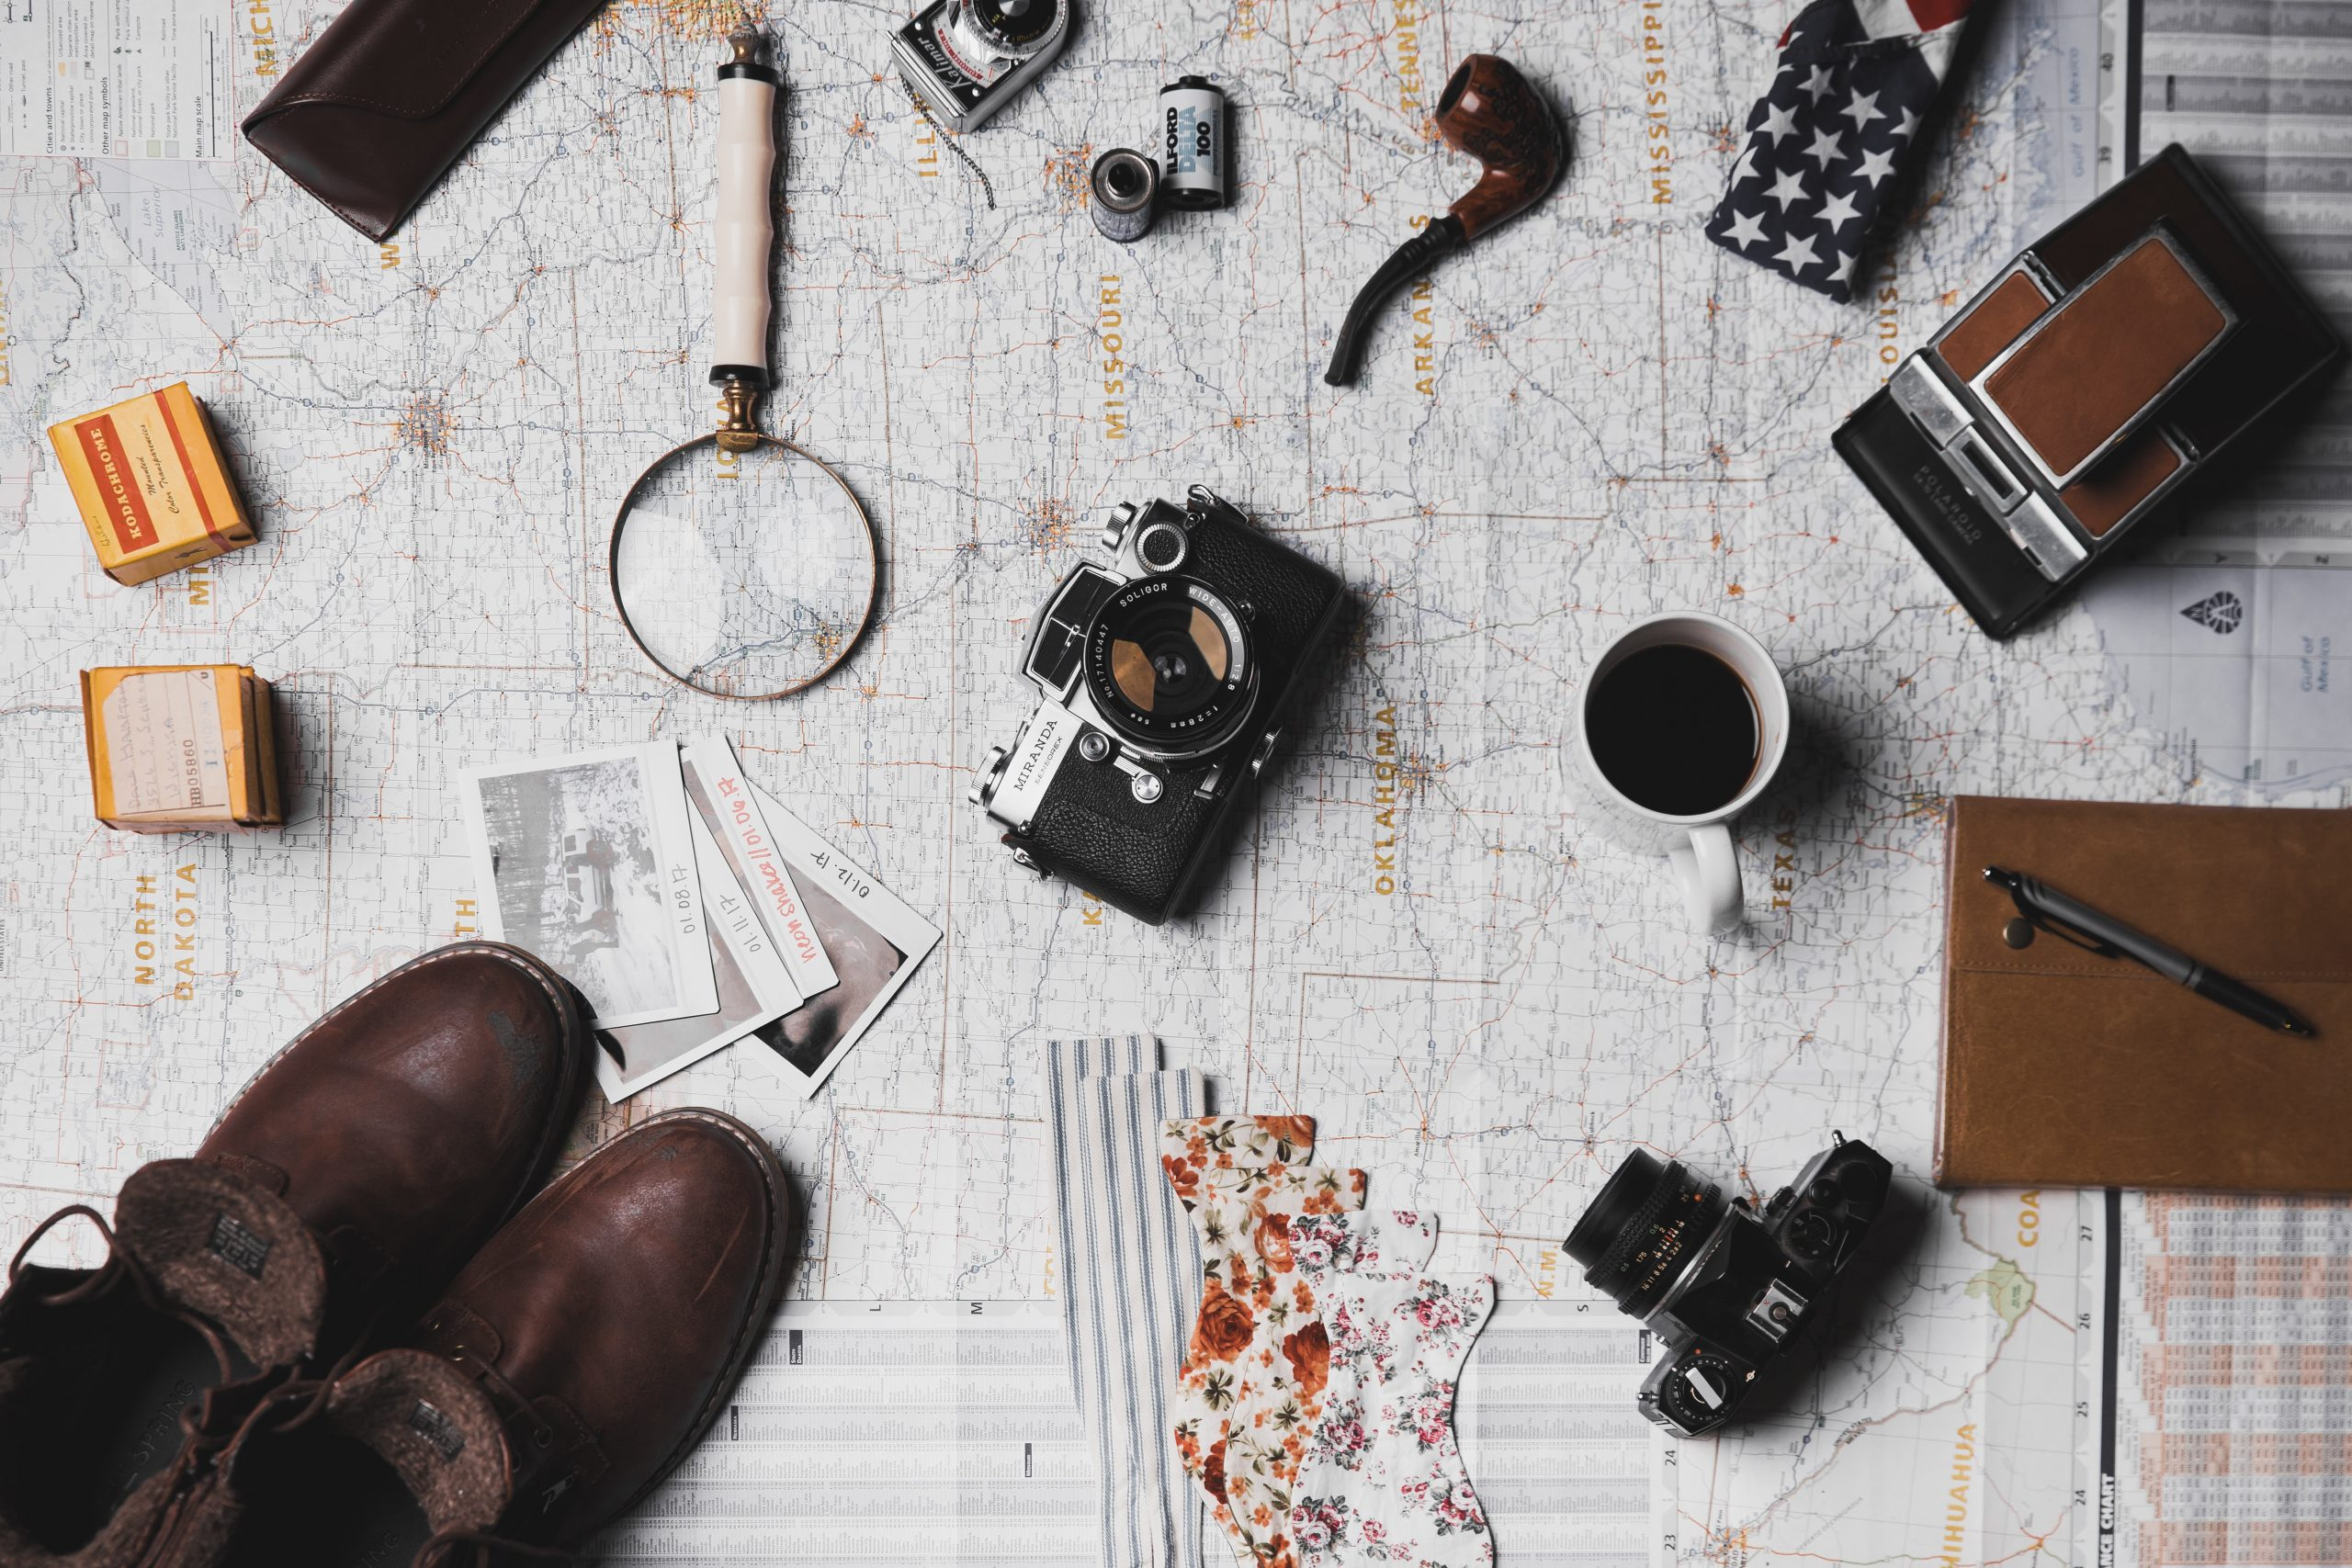 A camera, pair of brown boots, white ceramic mug, gray and black pens magnifying glass, and photographs all on top of a map.